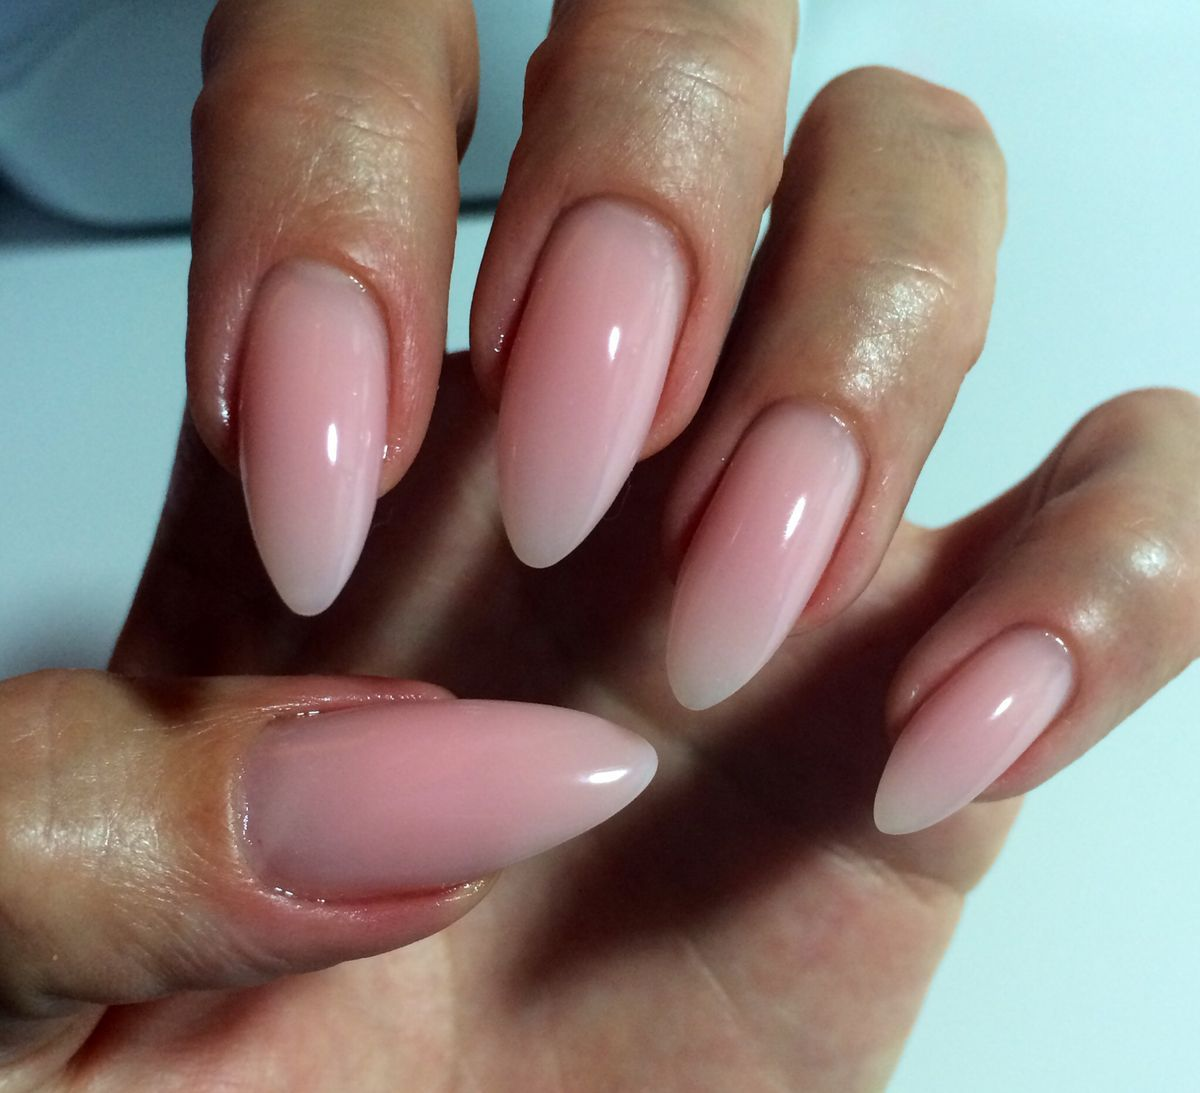 ❤️All\'❤ ❤ | Nails | Pinterest | Nail inspo, Pedi and Mani pedi